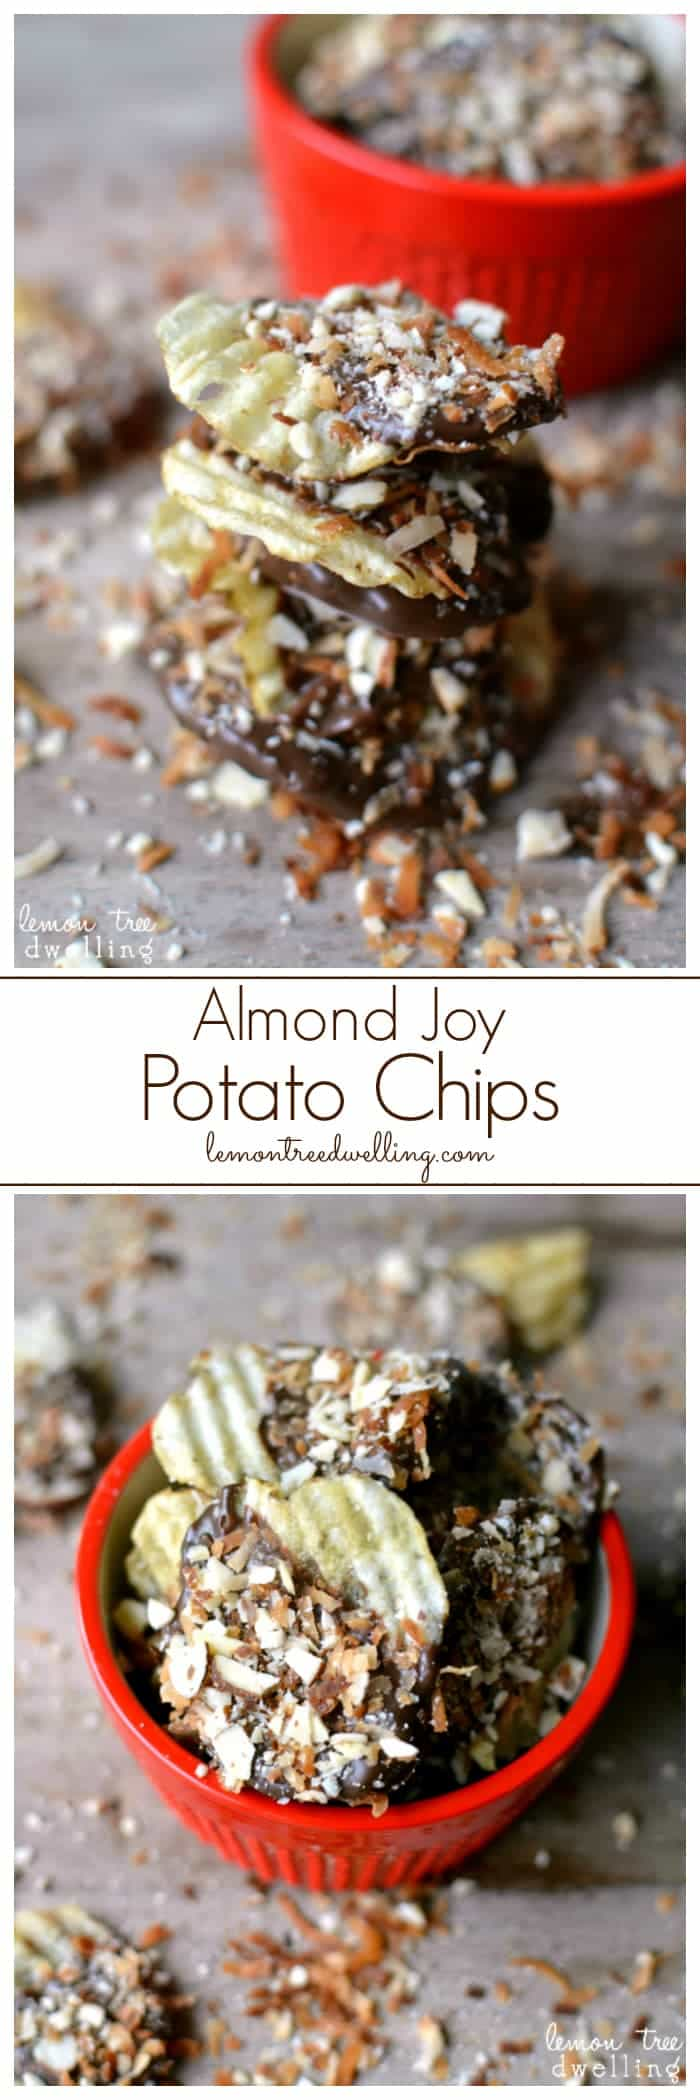 Almond Joy Potato Chips are a quick and tasty treat for any occasion! These are highly addictive! A crunchy, salty, sweet, and delicious treat! Have a handful!